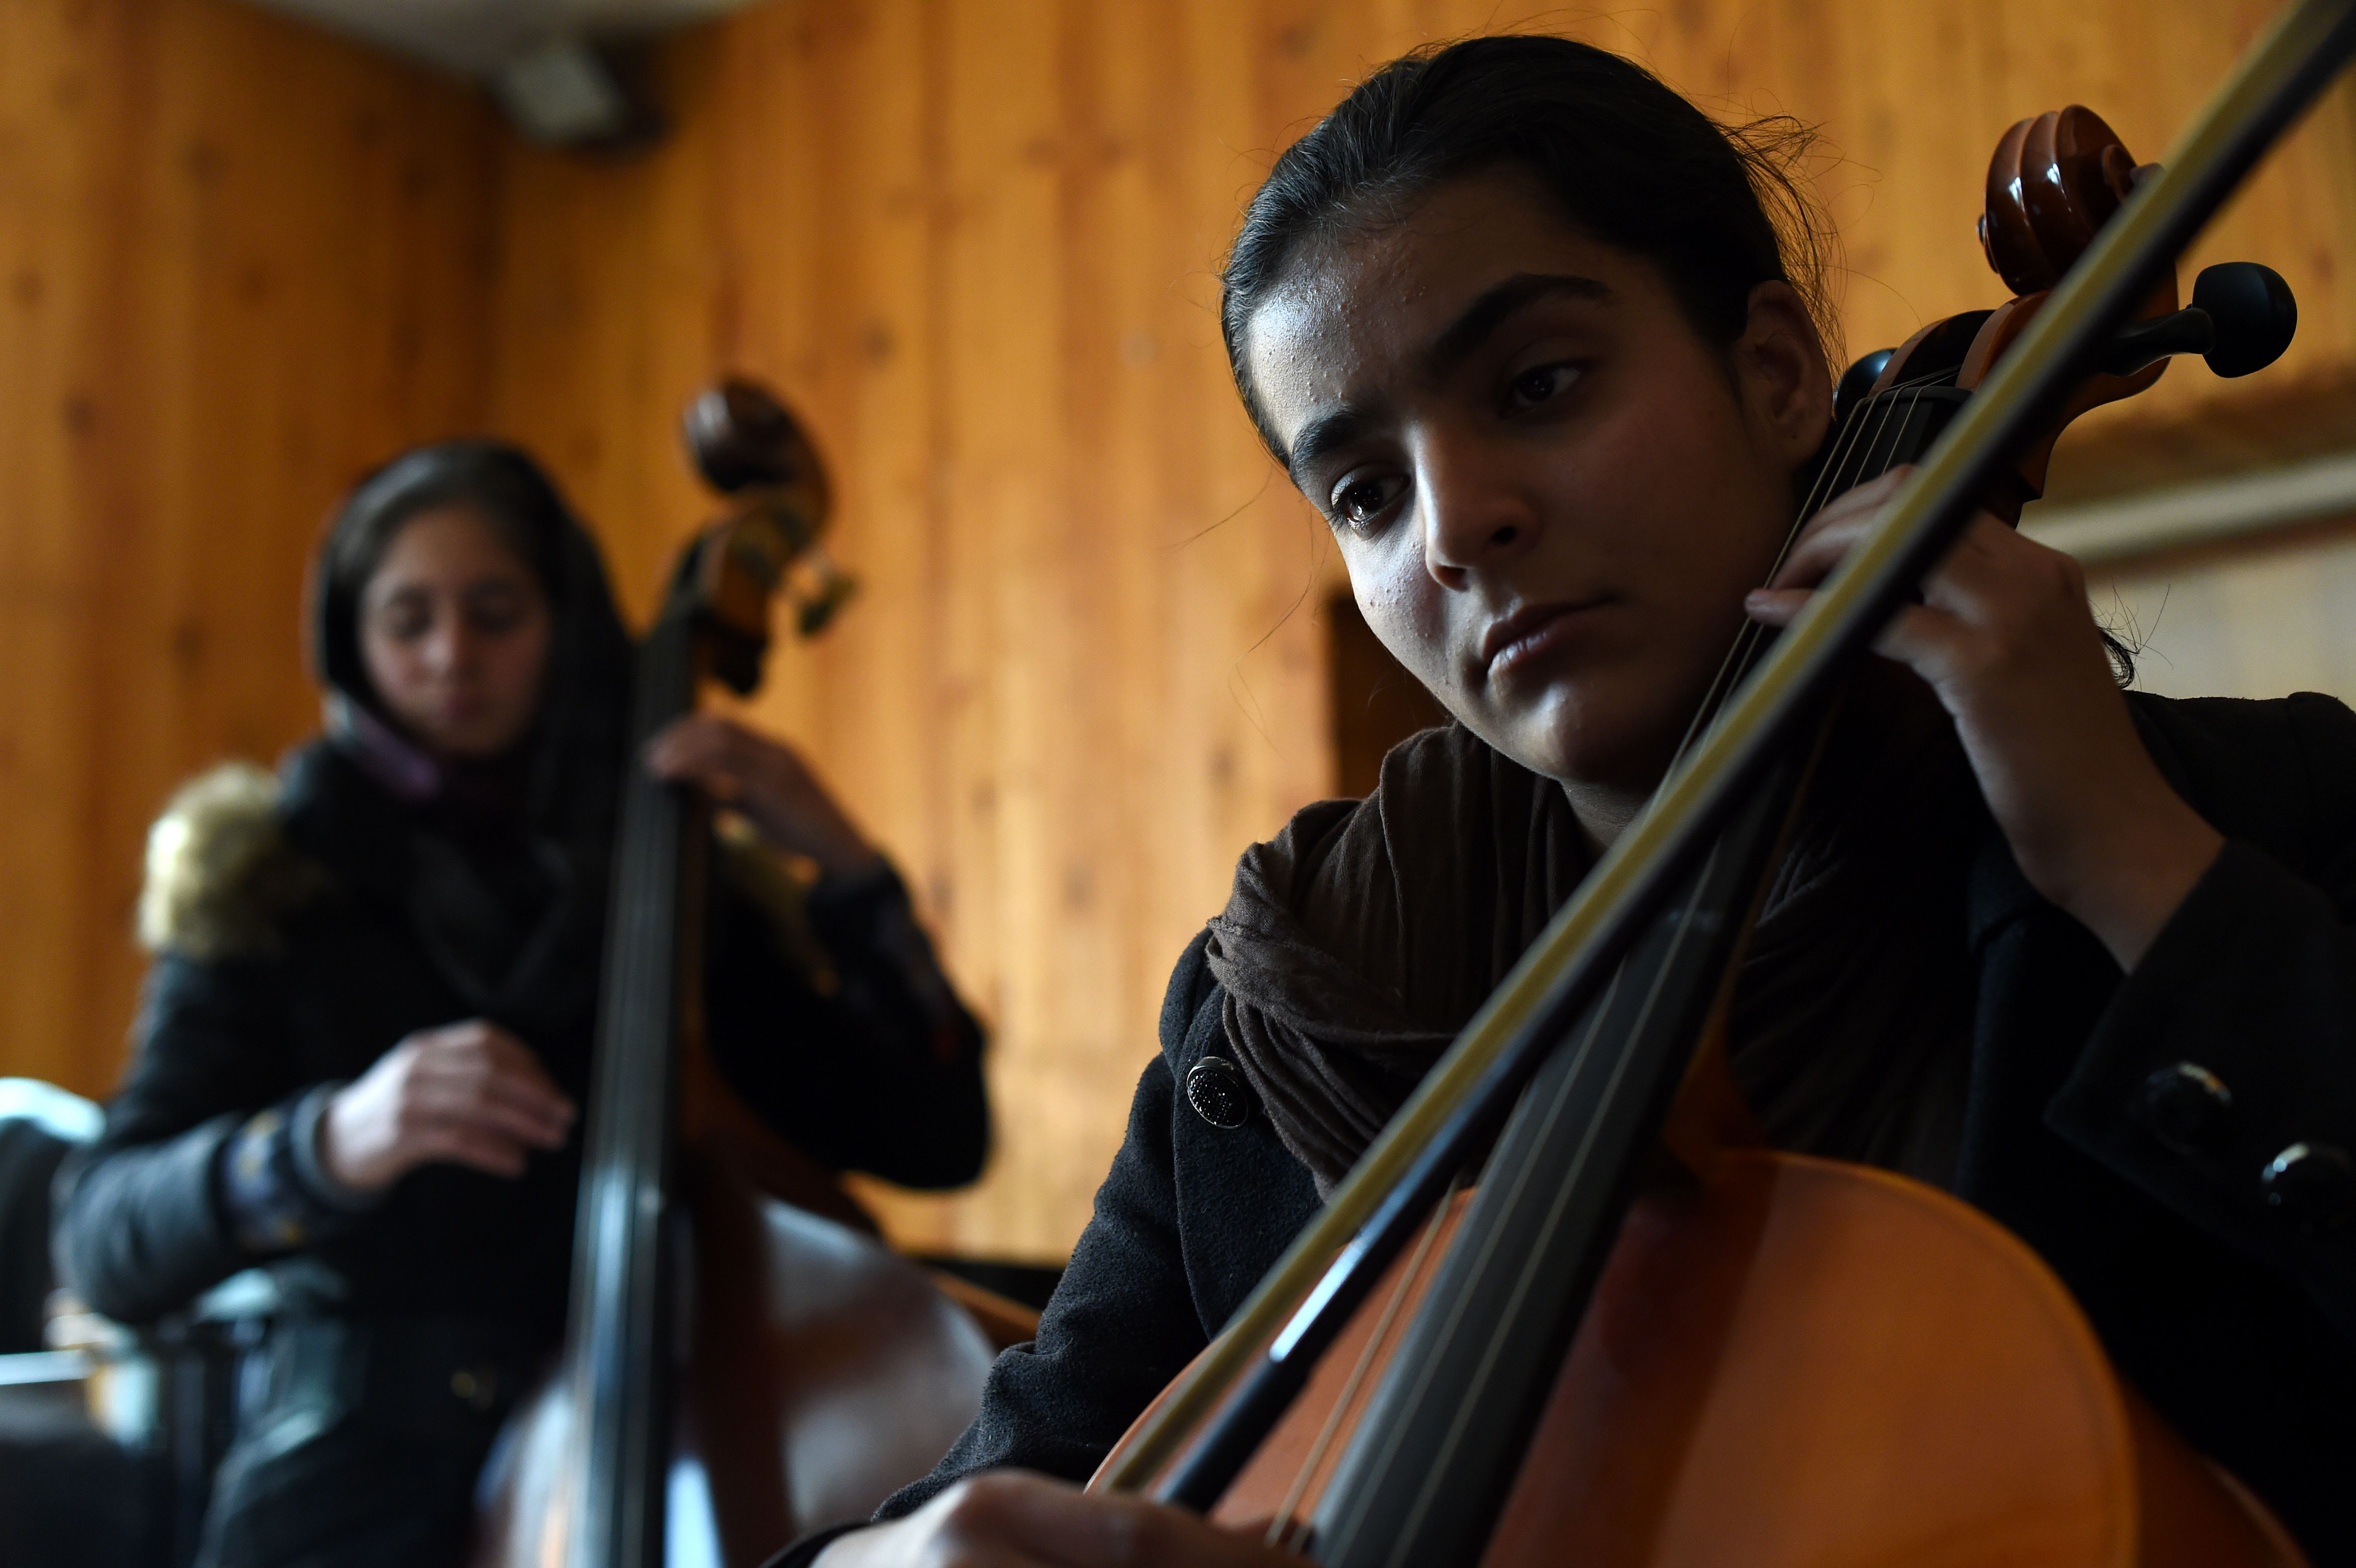 In this photograph taken on January 8, 2017, Afghan music students play during a rehearsal at The Afghanistan National Institute of Music in Kabul.